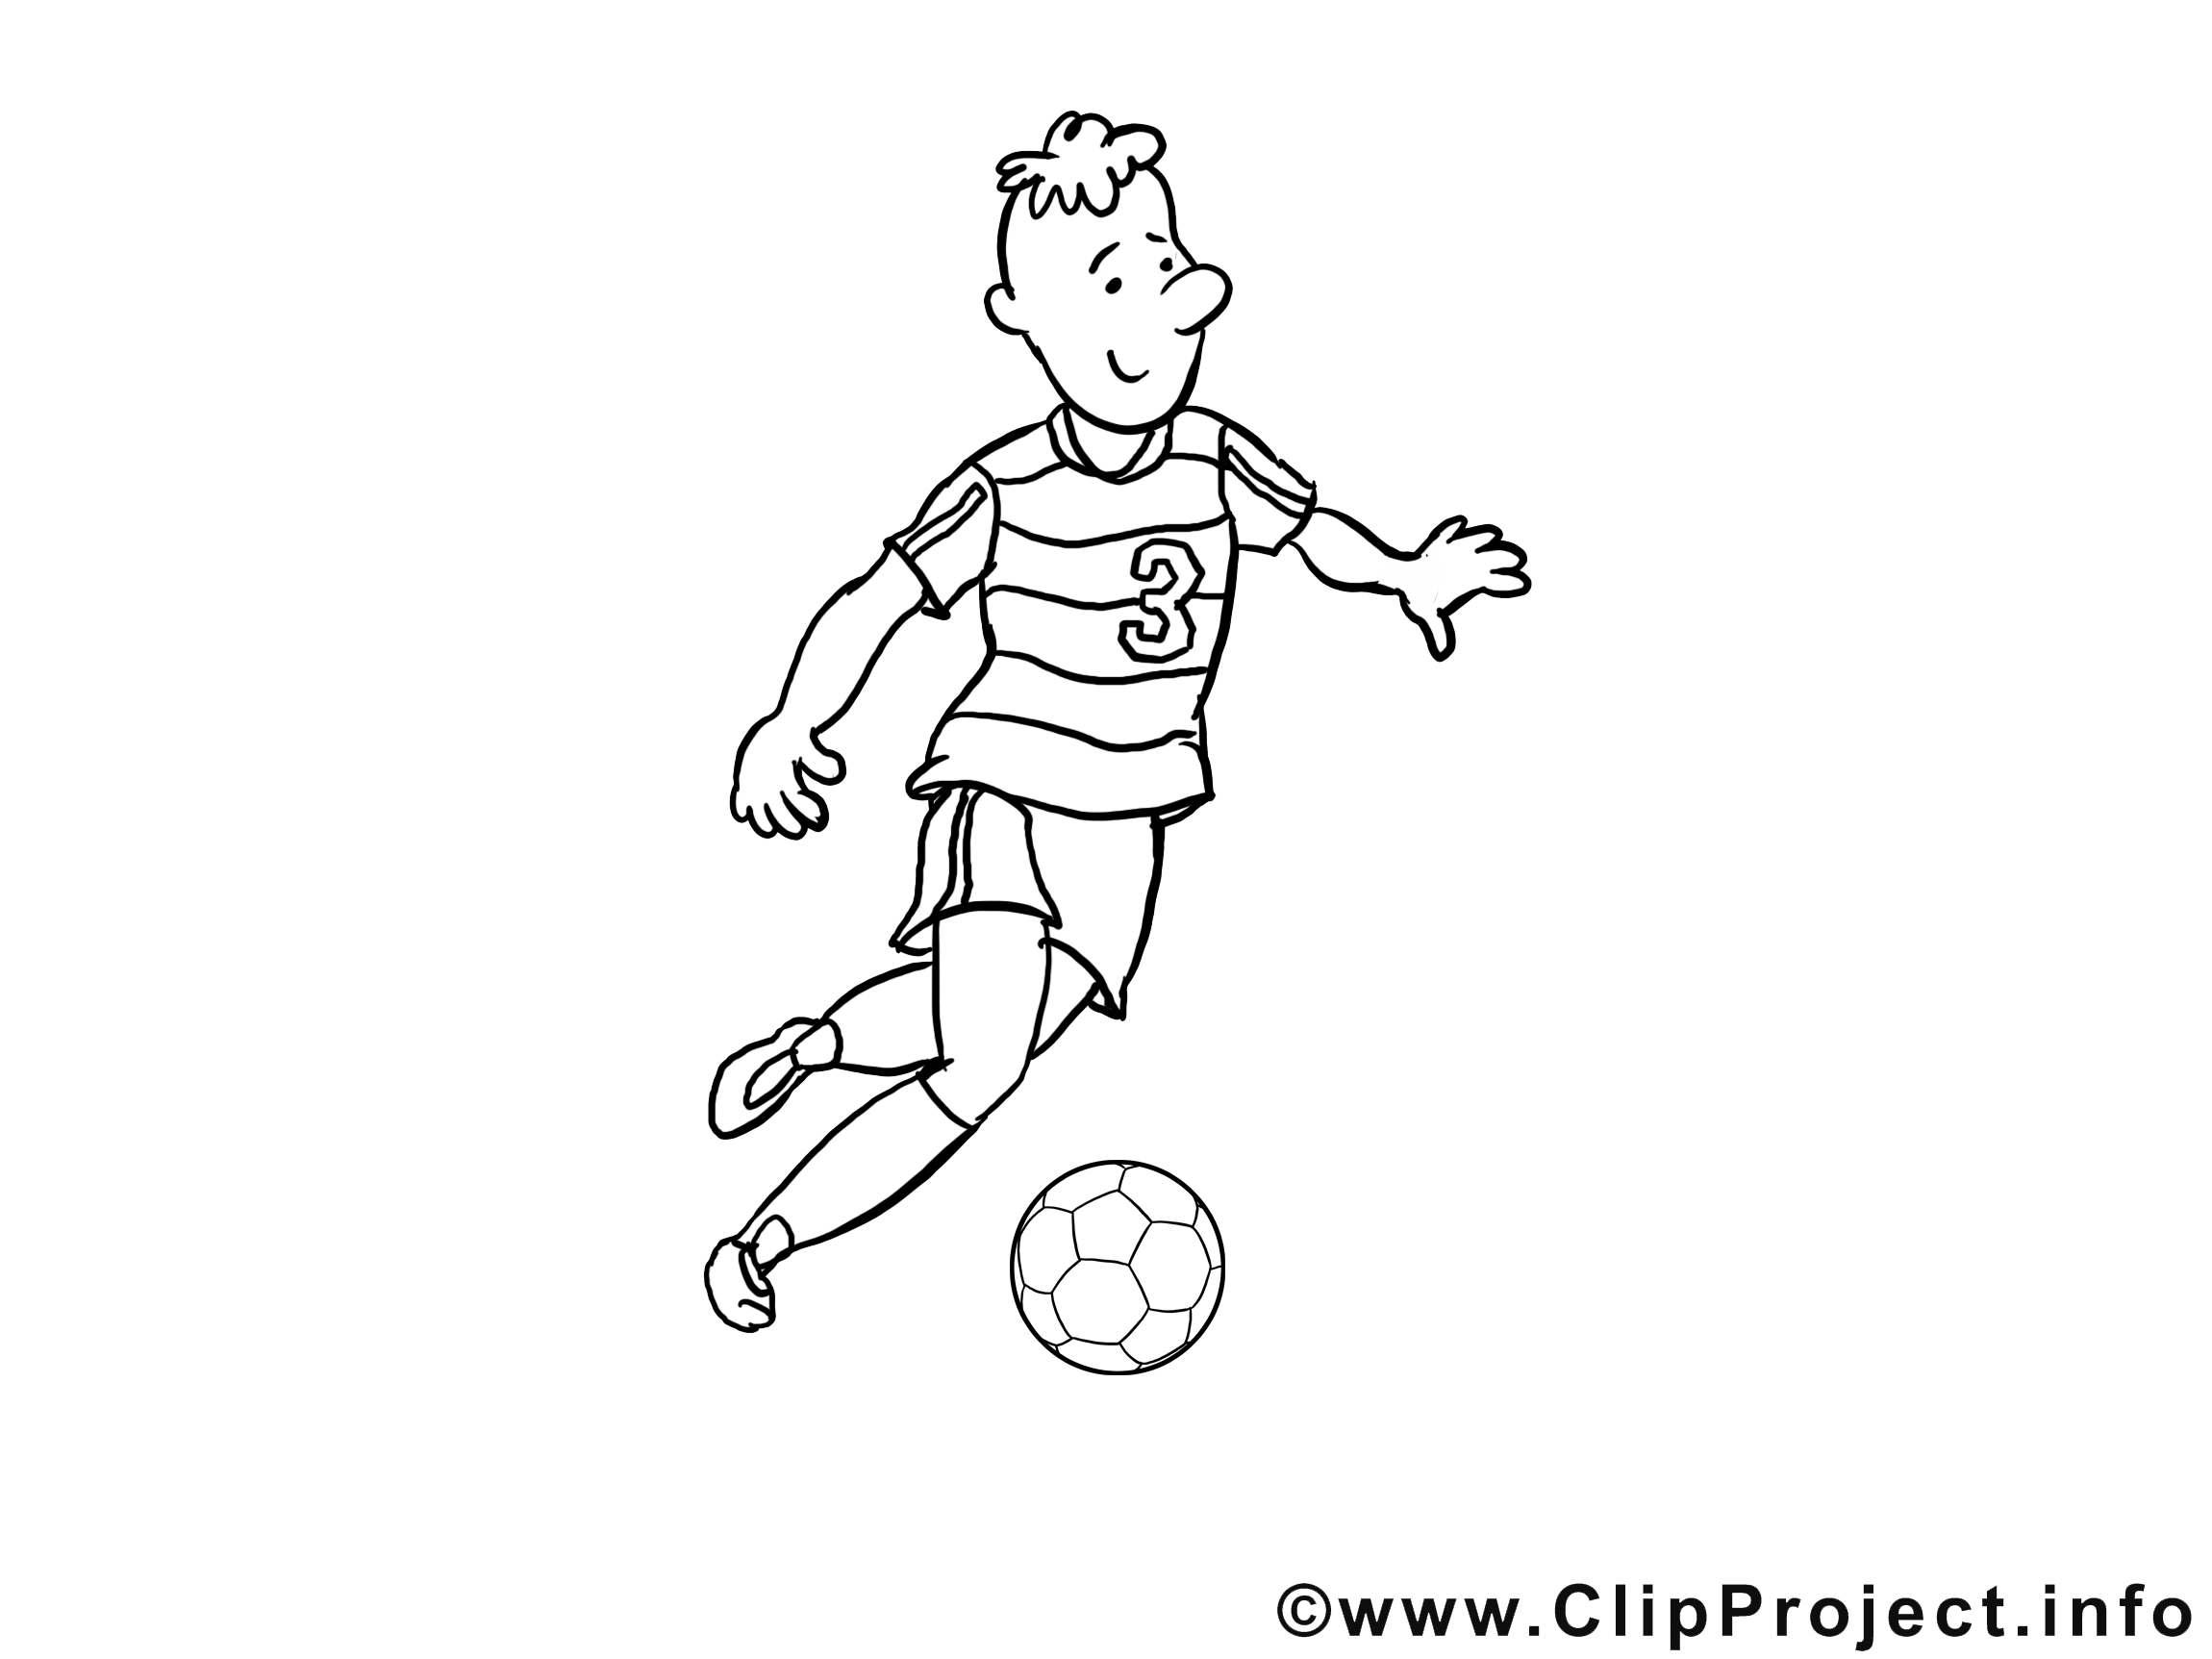 Coloriage Joueur De Foot.Coloriage Joueur Football Illustration A Telecharger Football